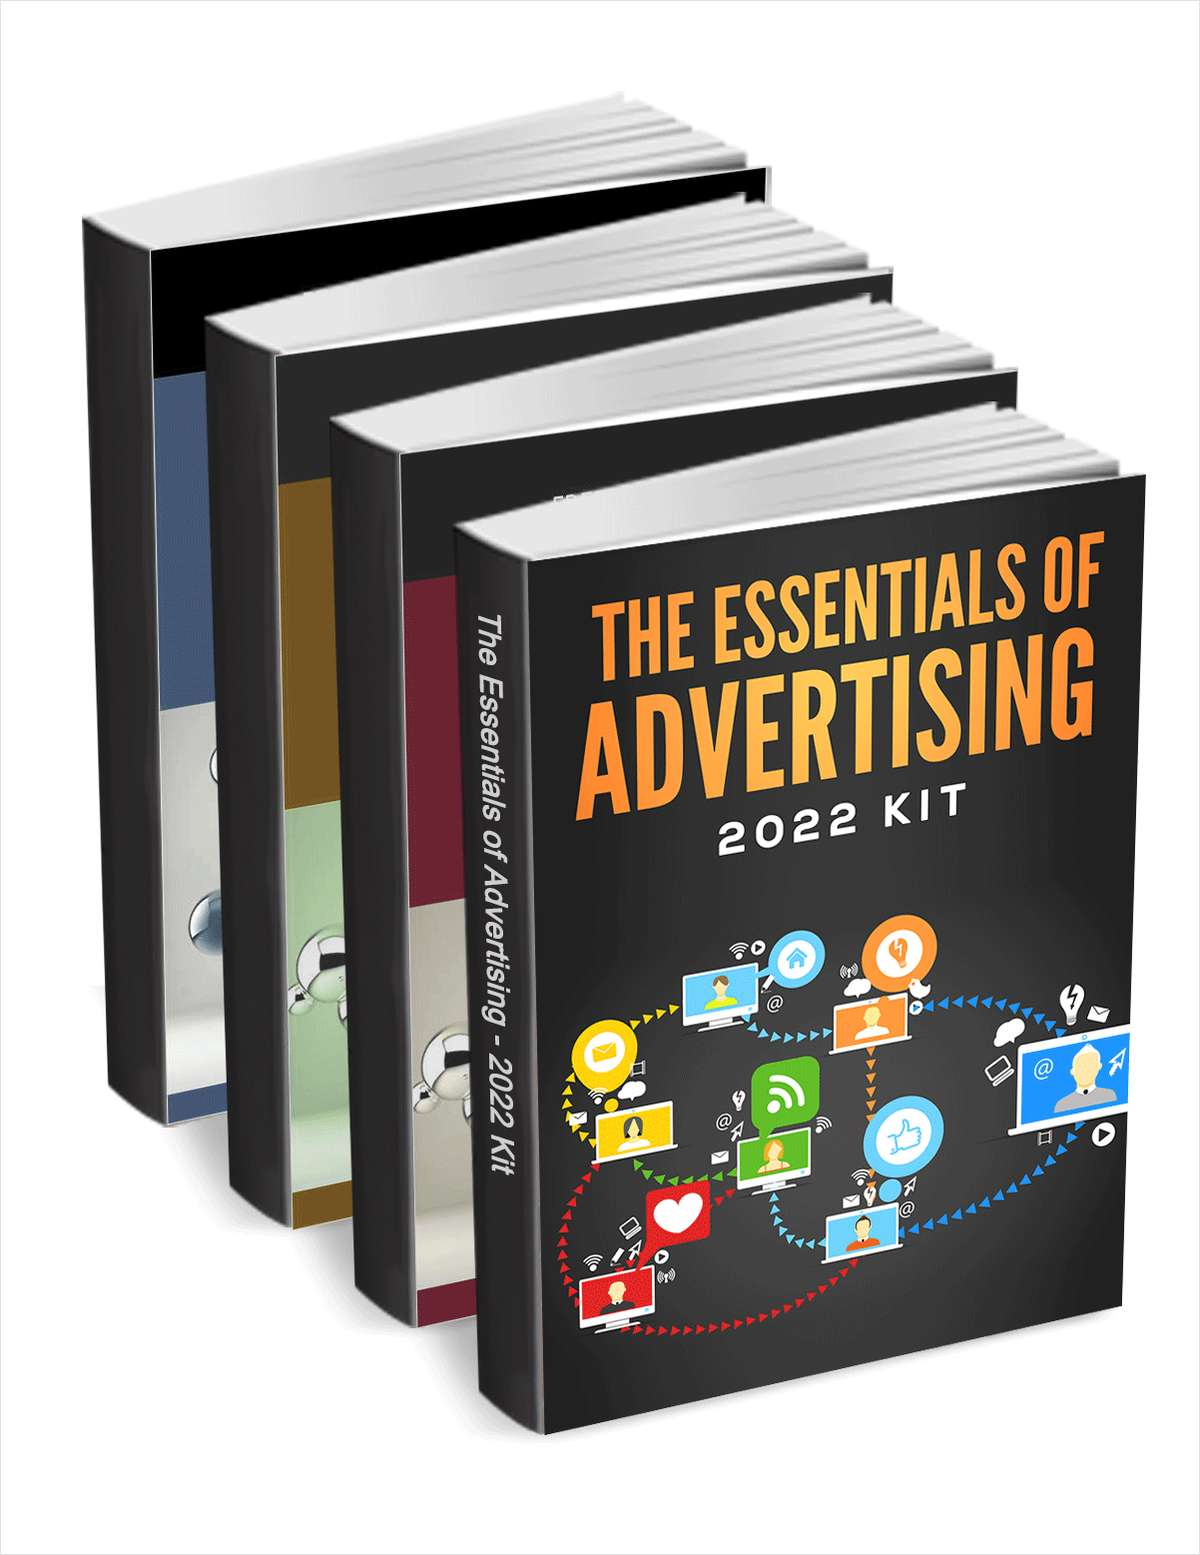 The Essentials of Advertising - 2017 Kit